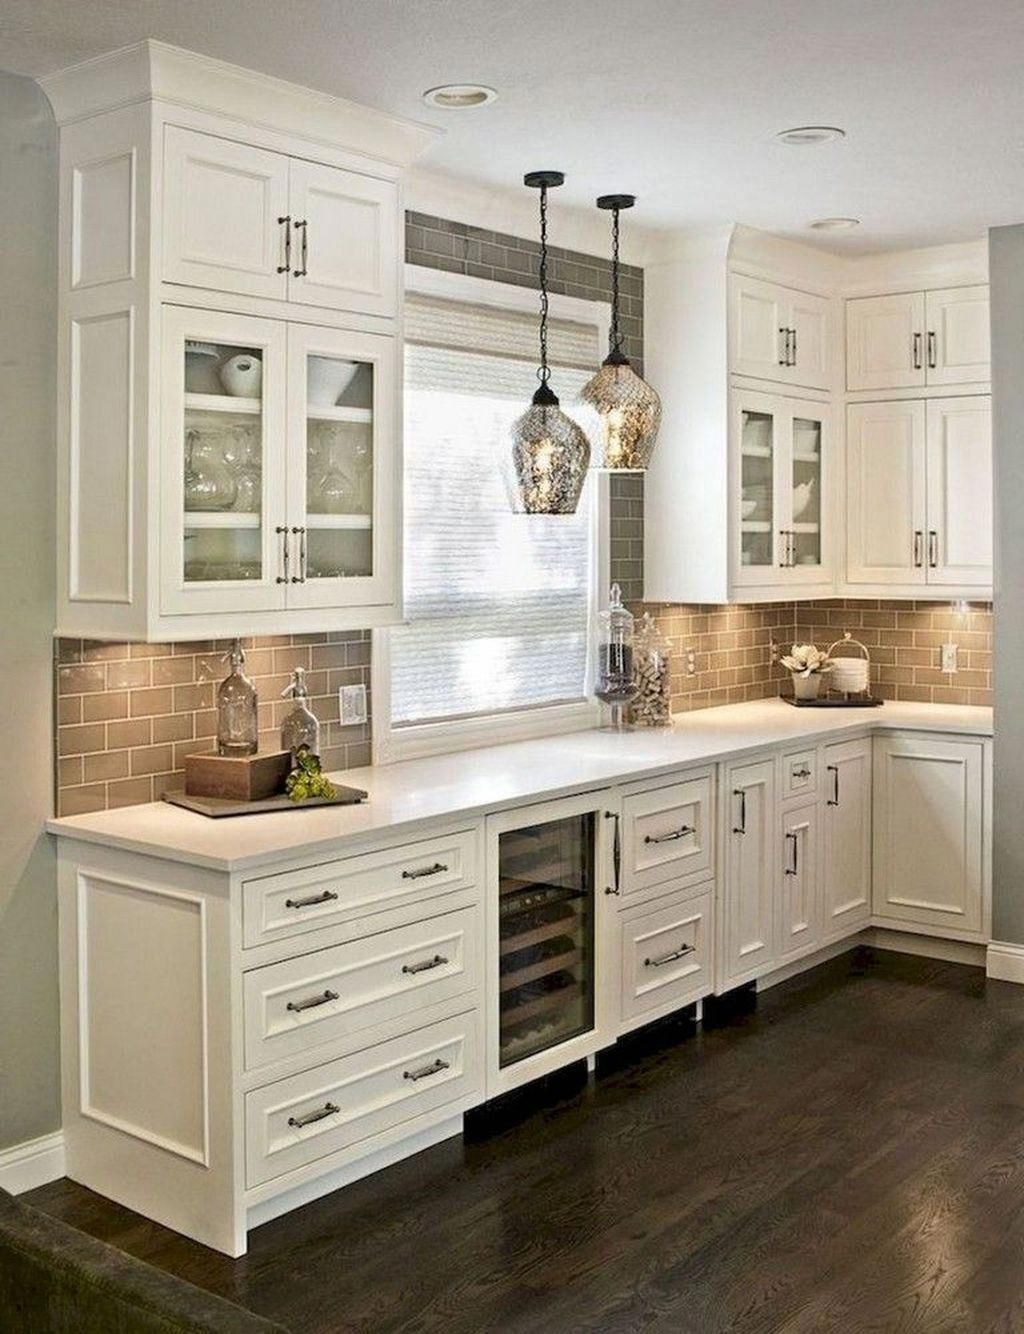 This Kind Of Thing Is Unquestionably An Extraordinary Style Concept In 2020 Kitchen Decor Inspiration Simple Kitchen Cabinets Rustic Modern Kitchen